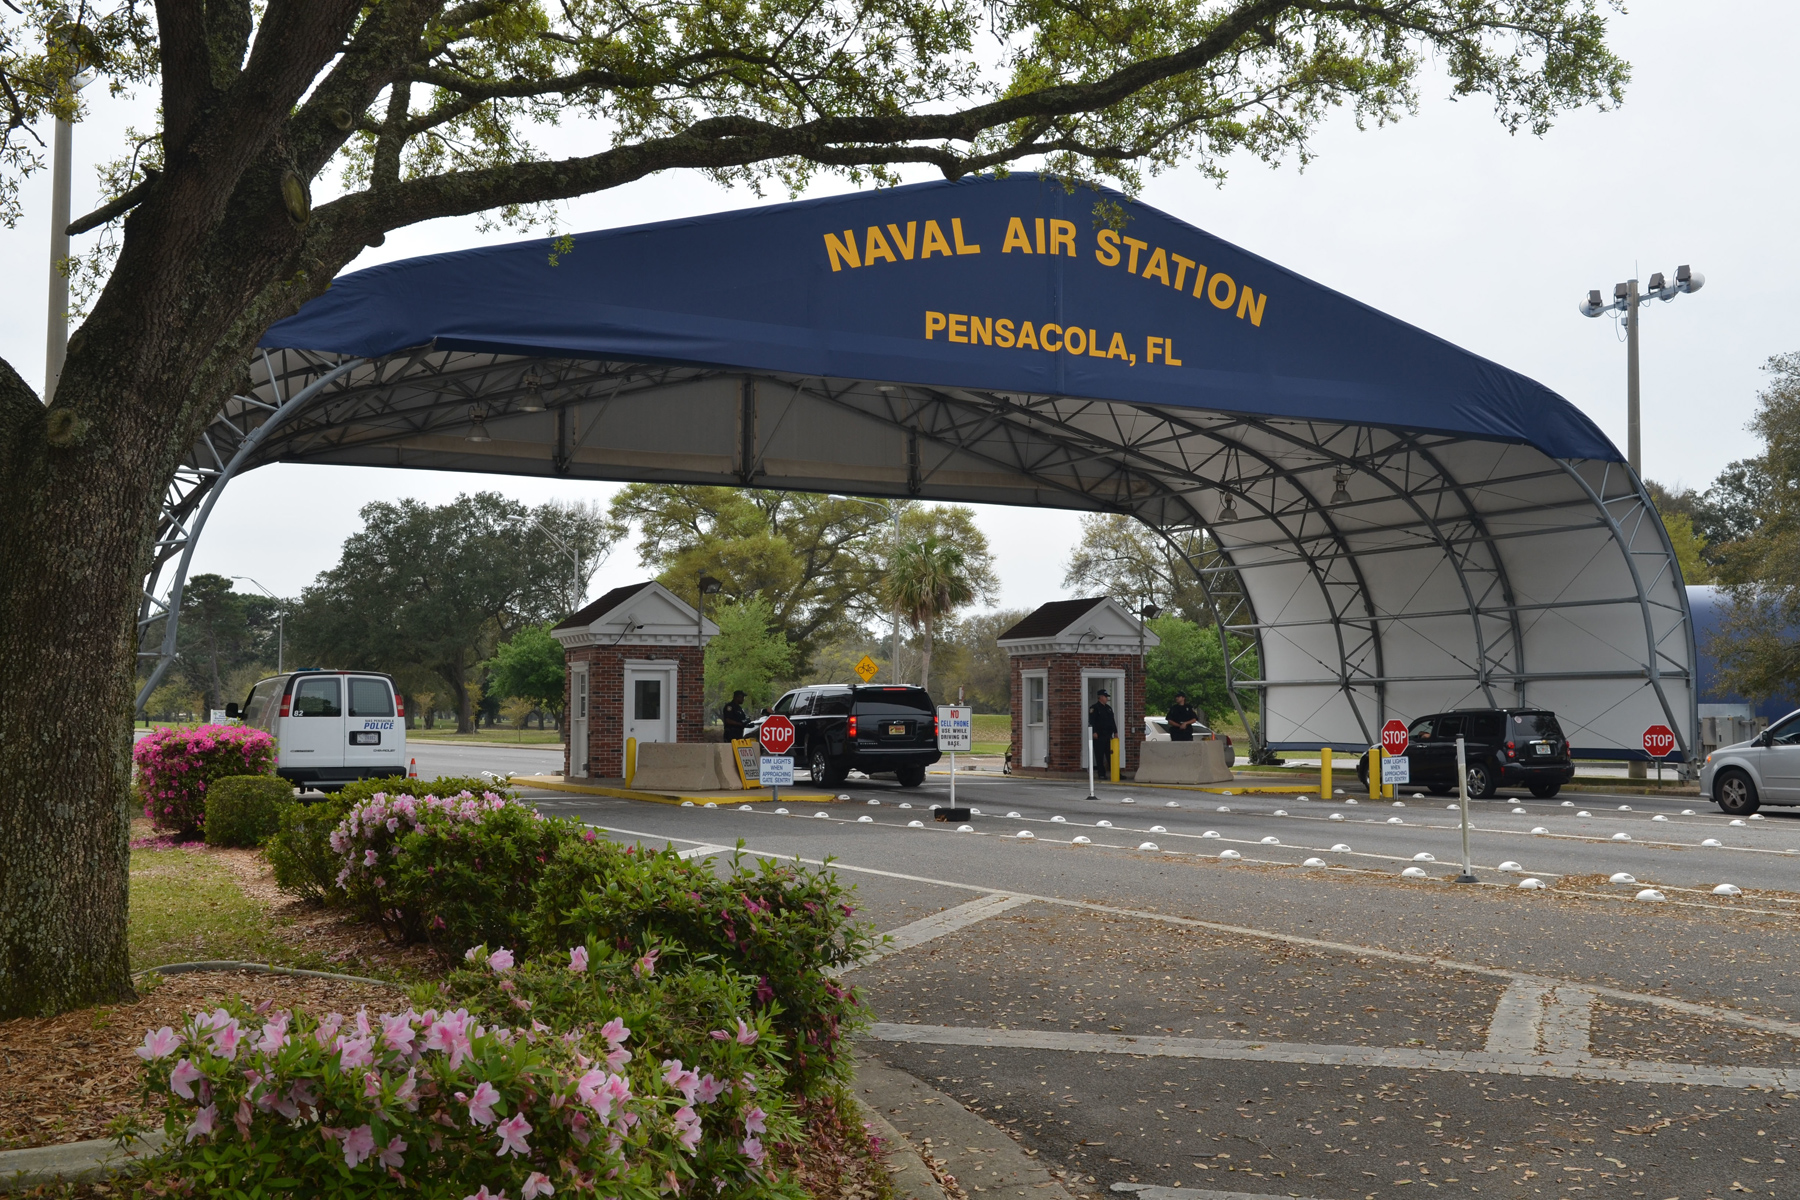 Reports of Active Shooter Put Pensacola Naval Base on Lockdown